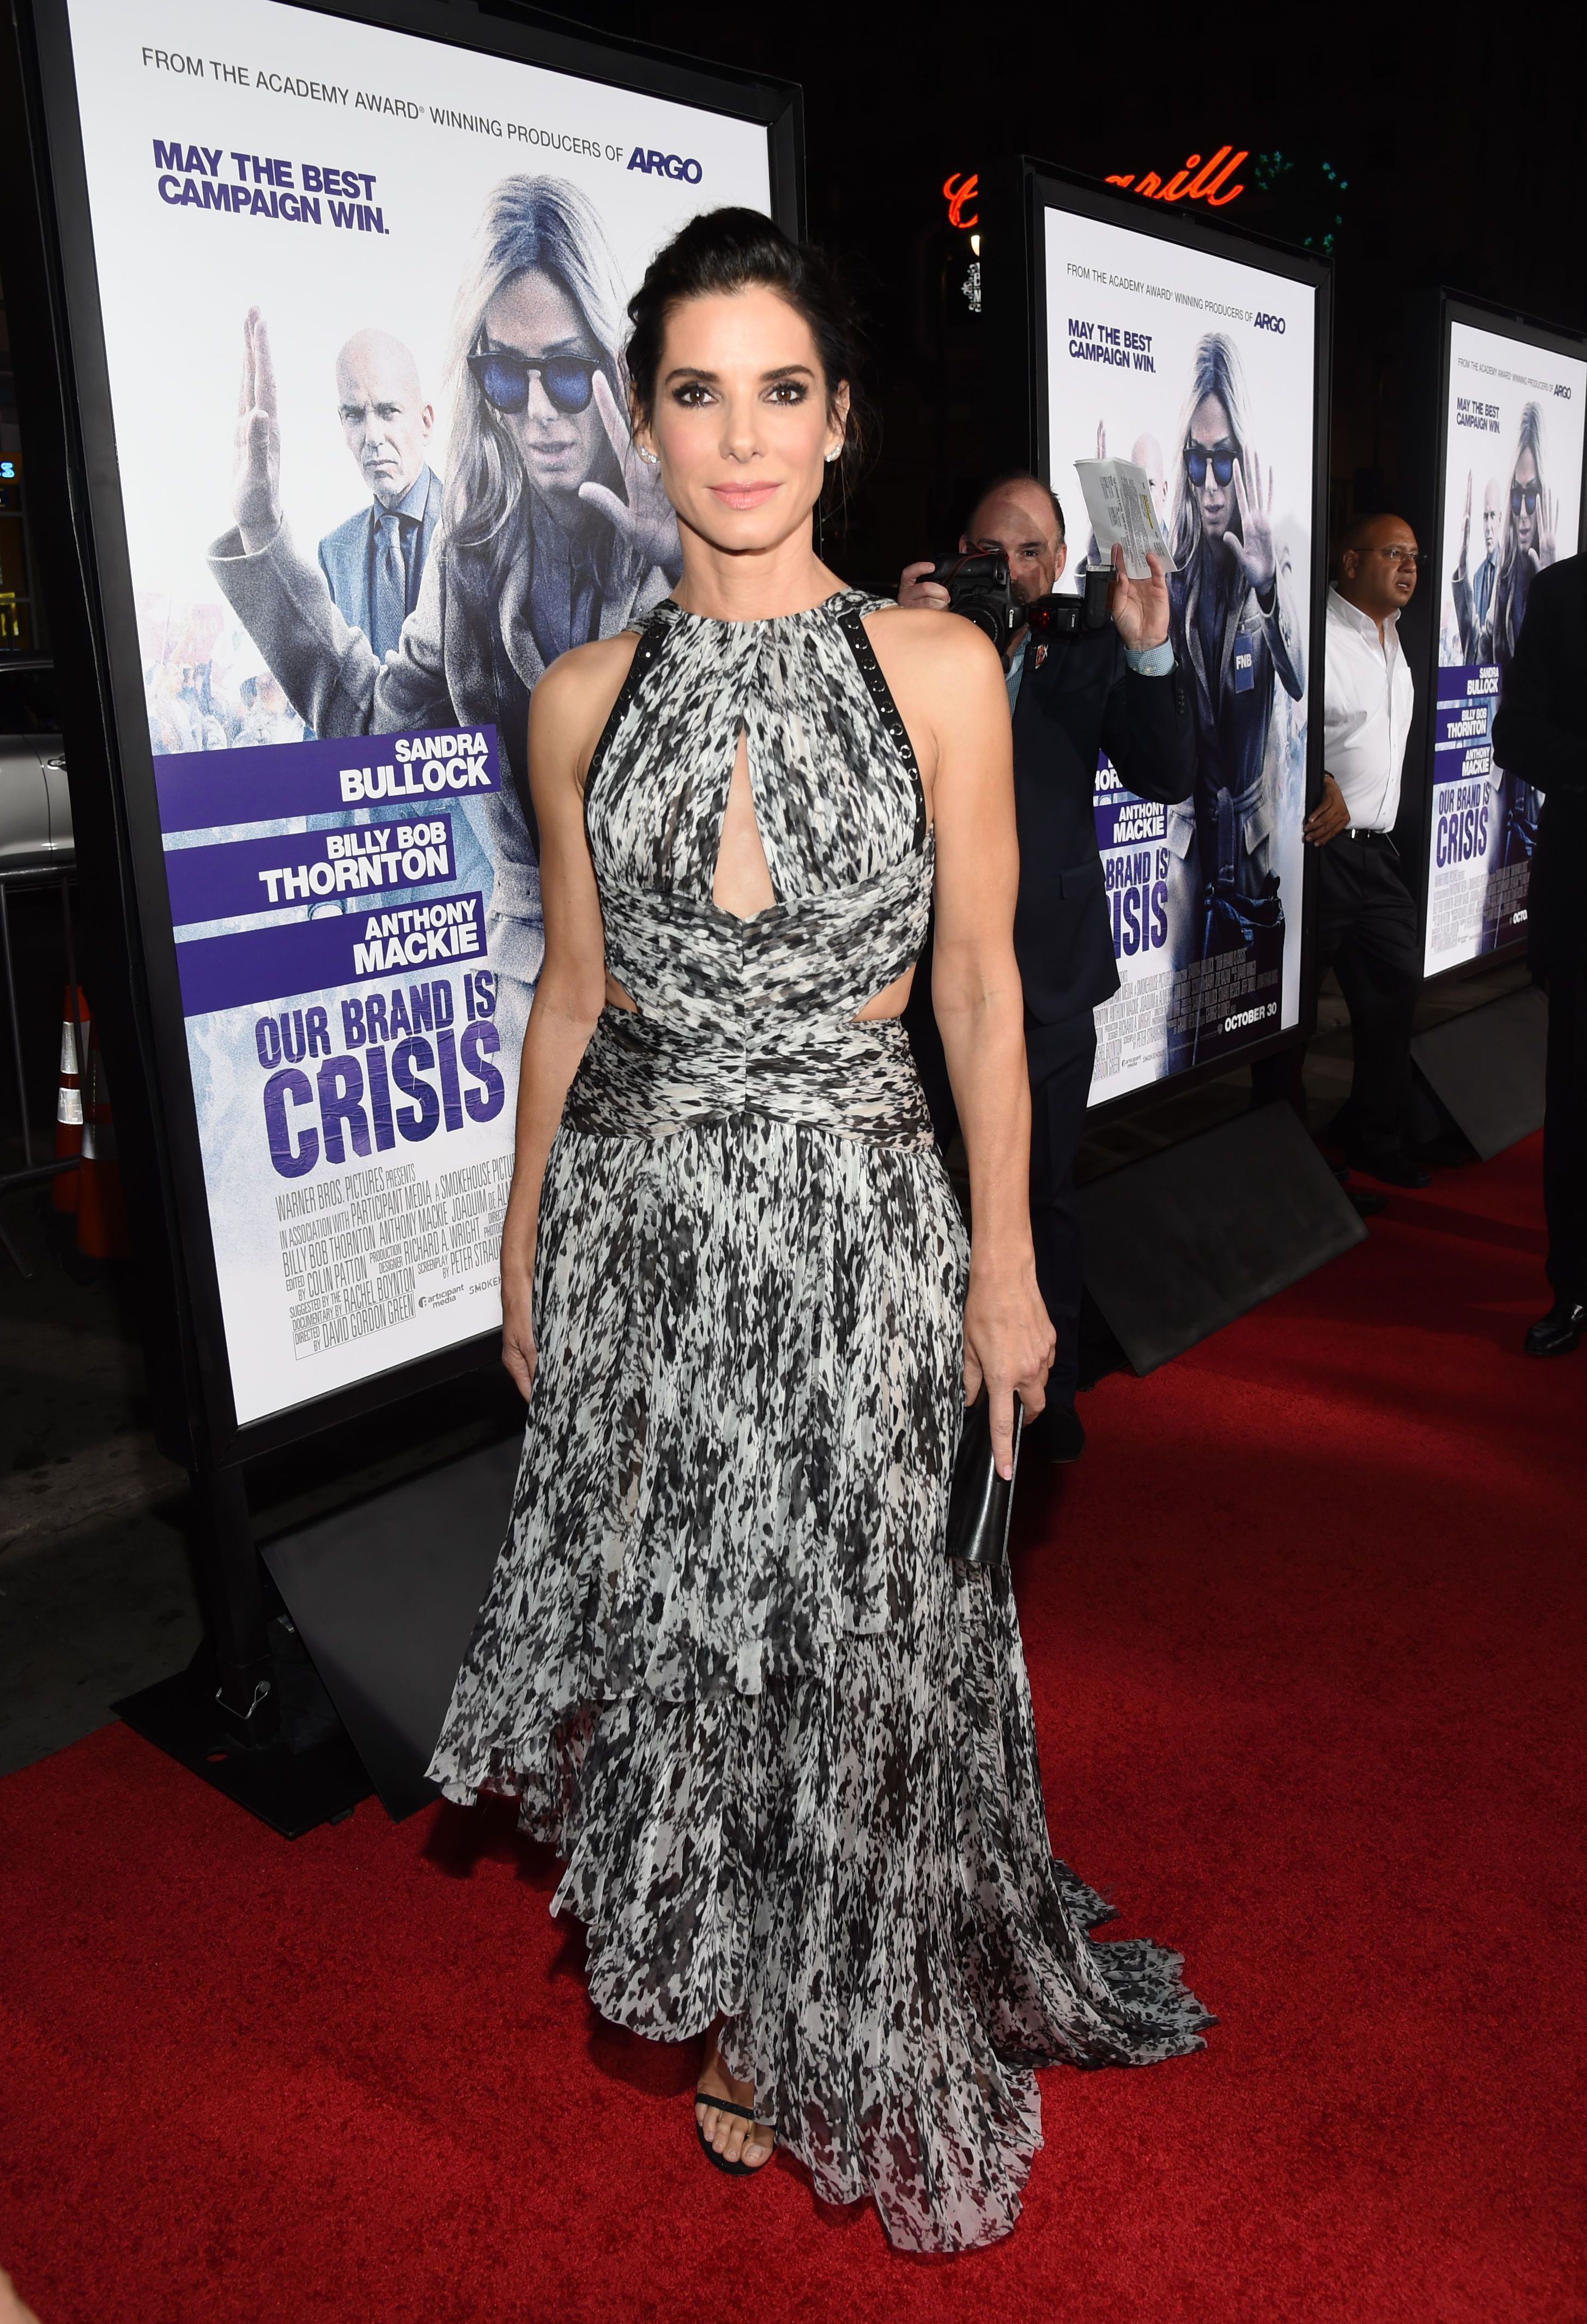 Sandra Bullock jets off to Austin with her new beau